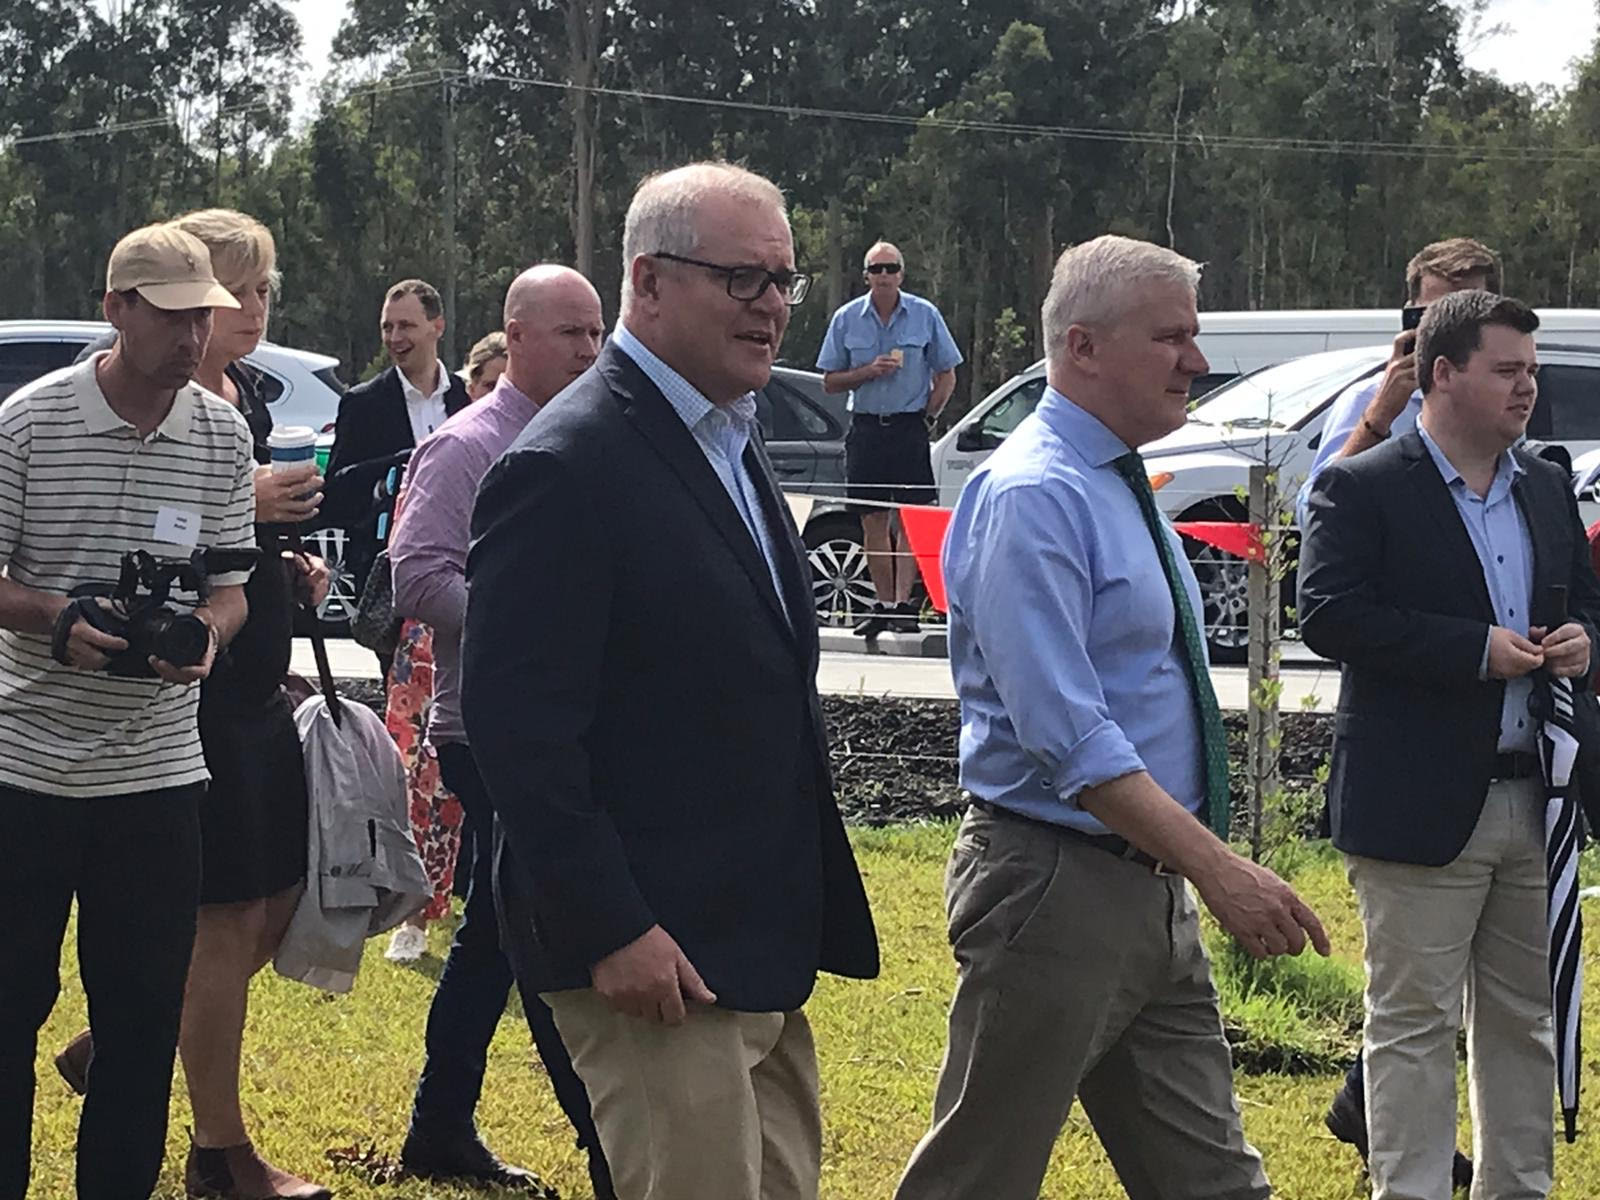 Prime Minister Scott Morrison at the grand opening of the Pacific Highway upgrade in New Italy.